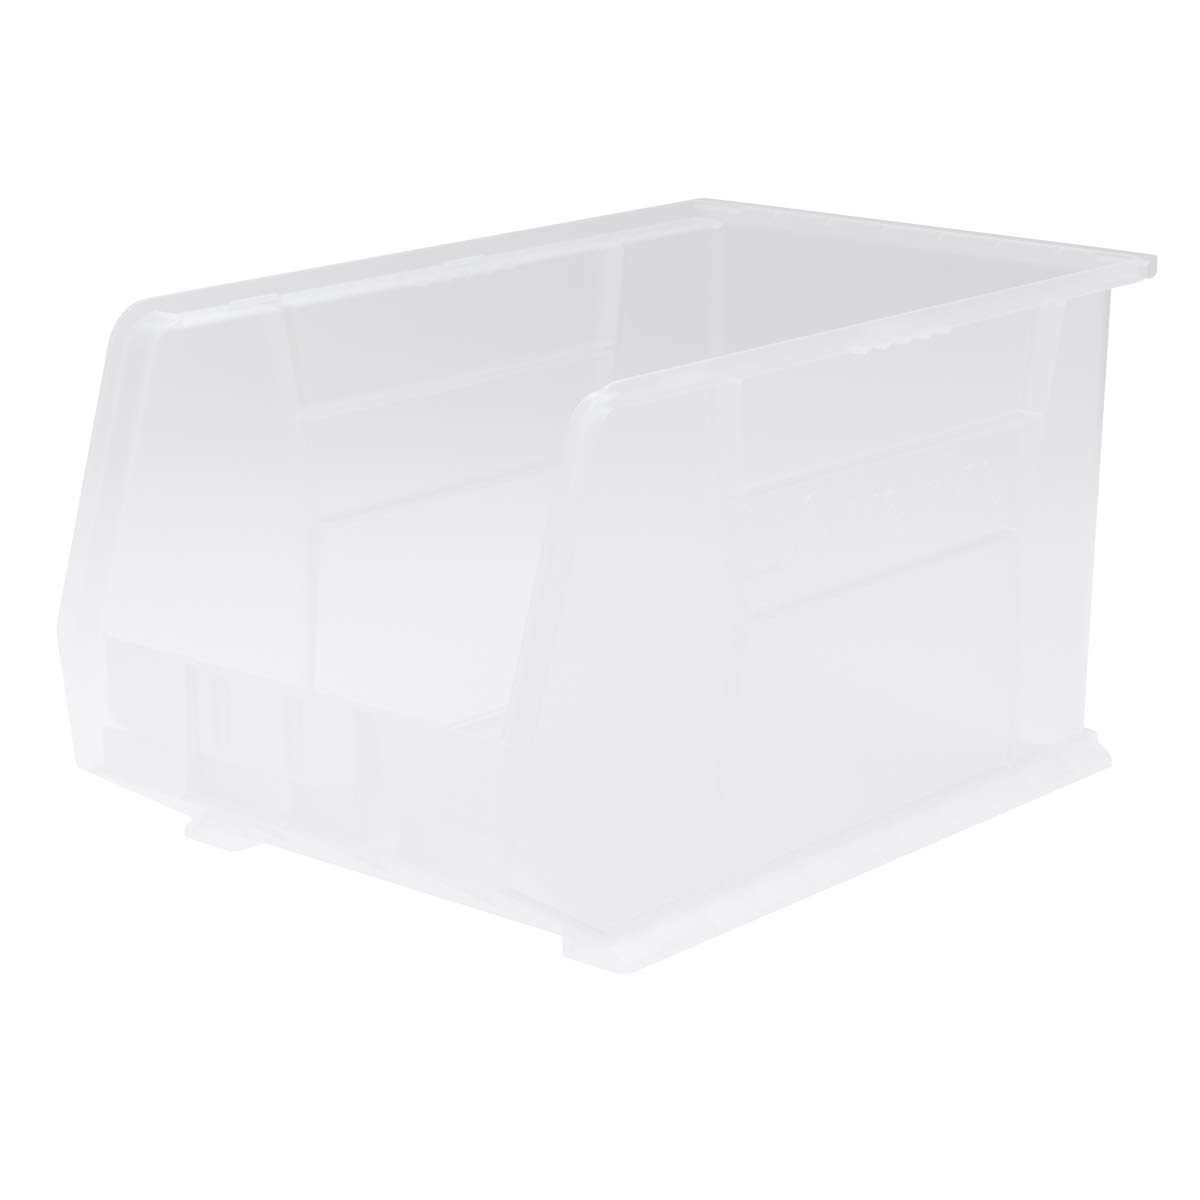 Akro-Mils 30260 AkroBins Plastic Storage Bin Hanging Stacking Containers, (18-Inch x 11-Inch x 10-Inch), Clear, (6-Pack)